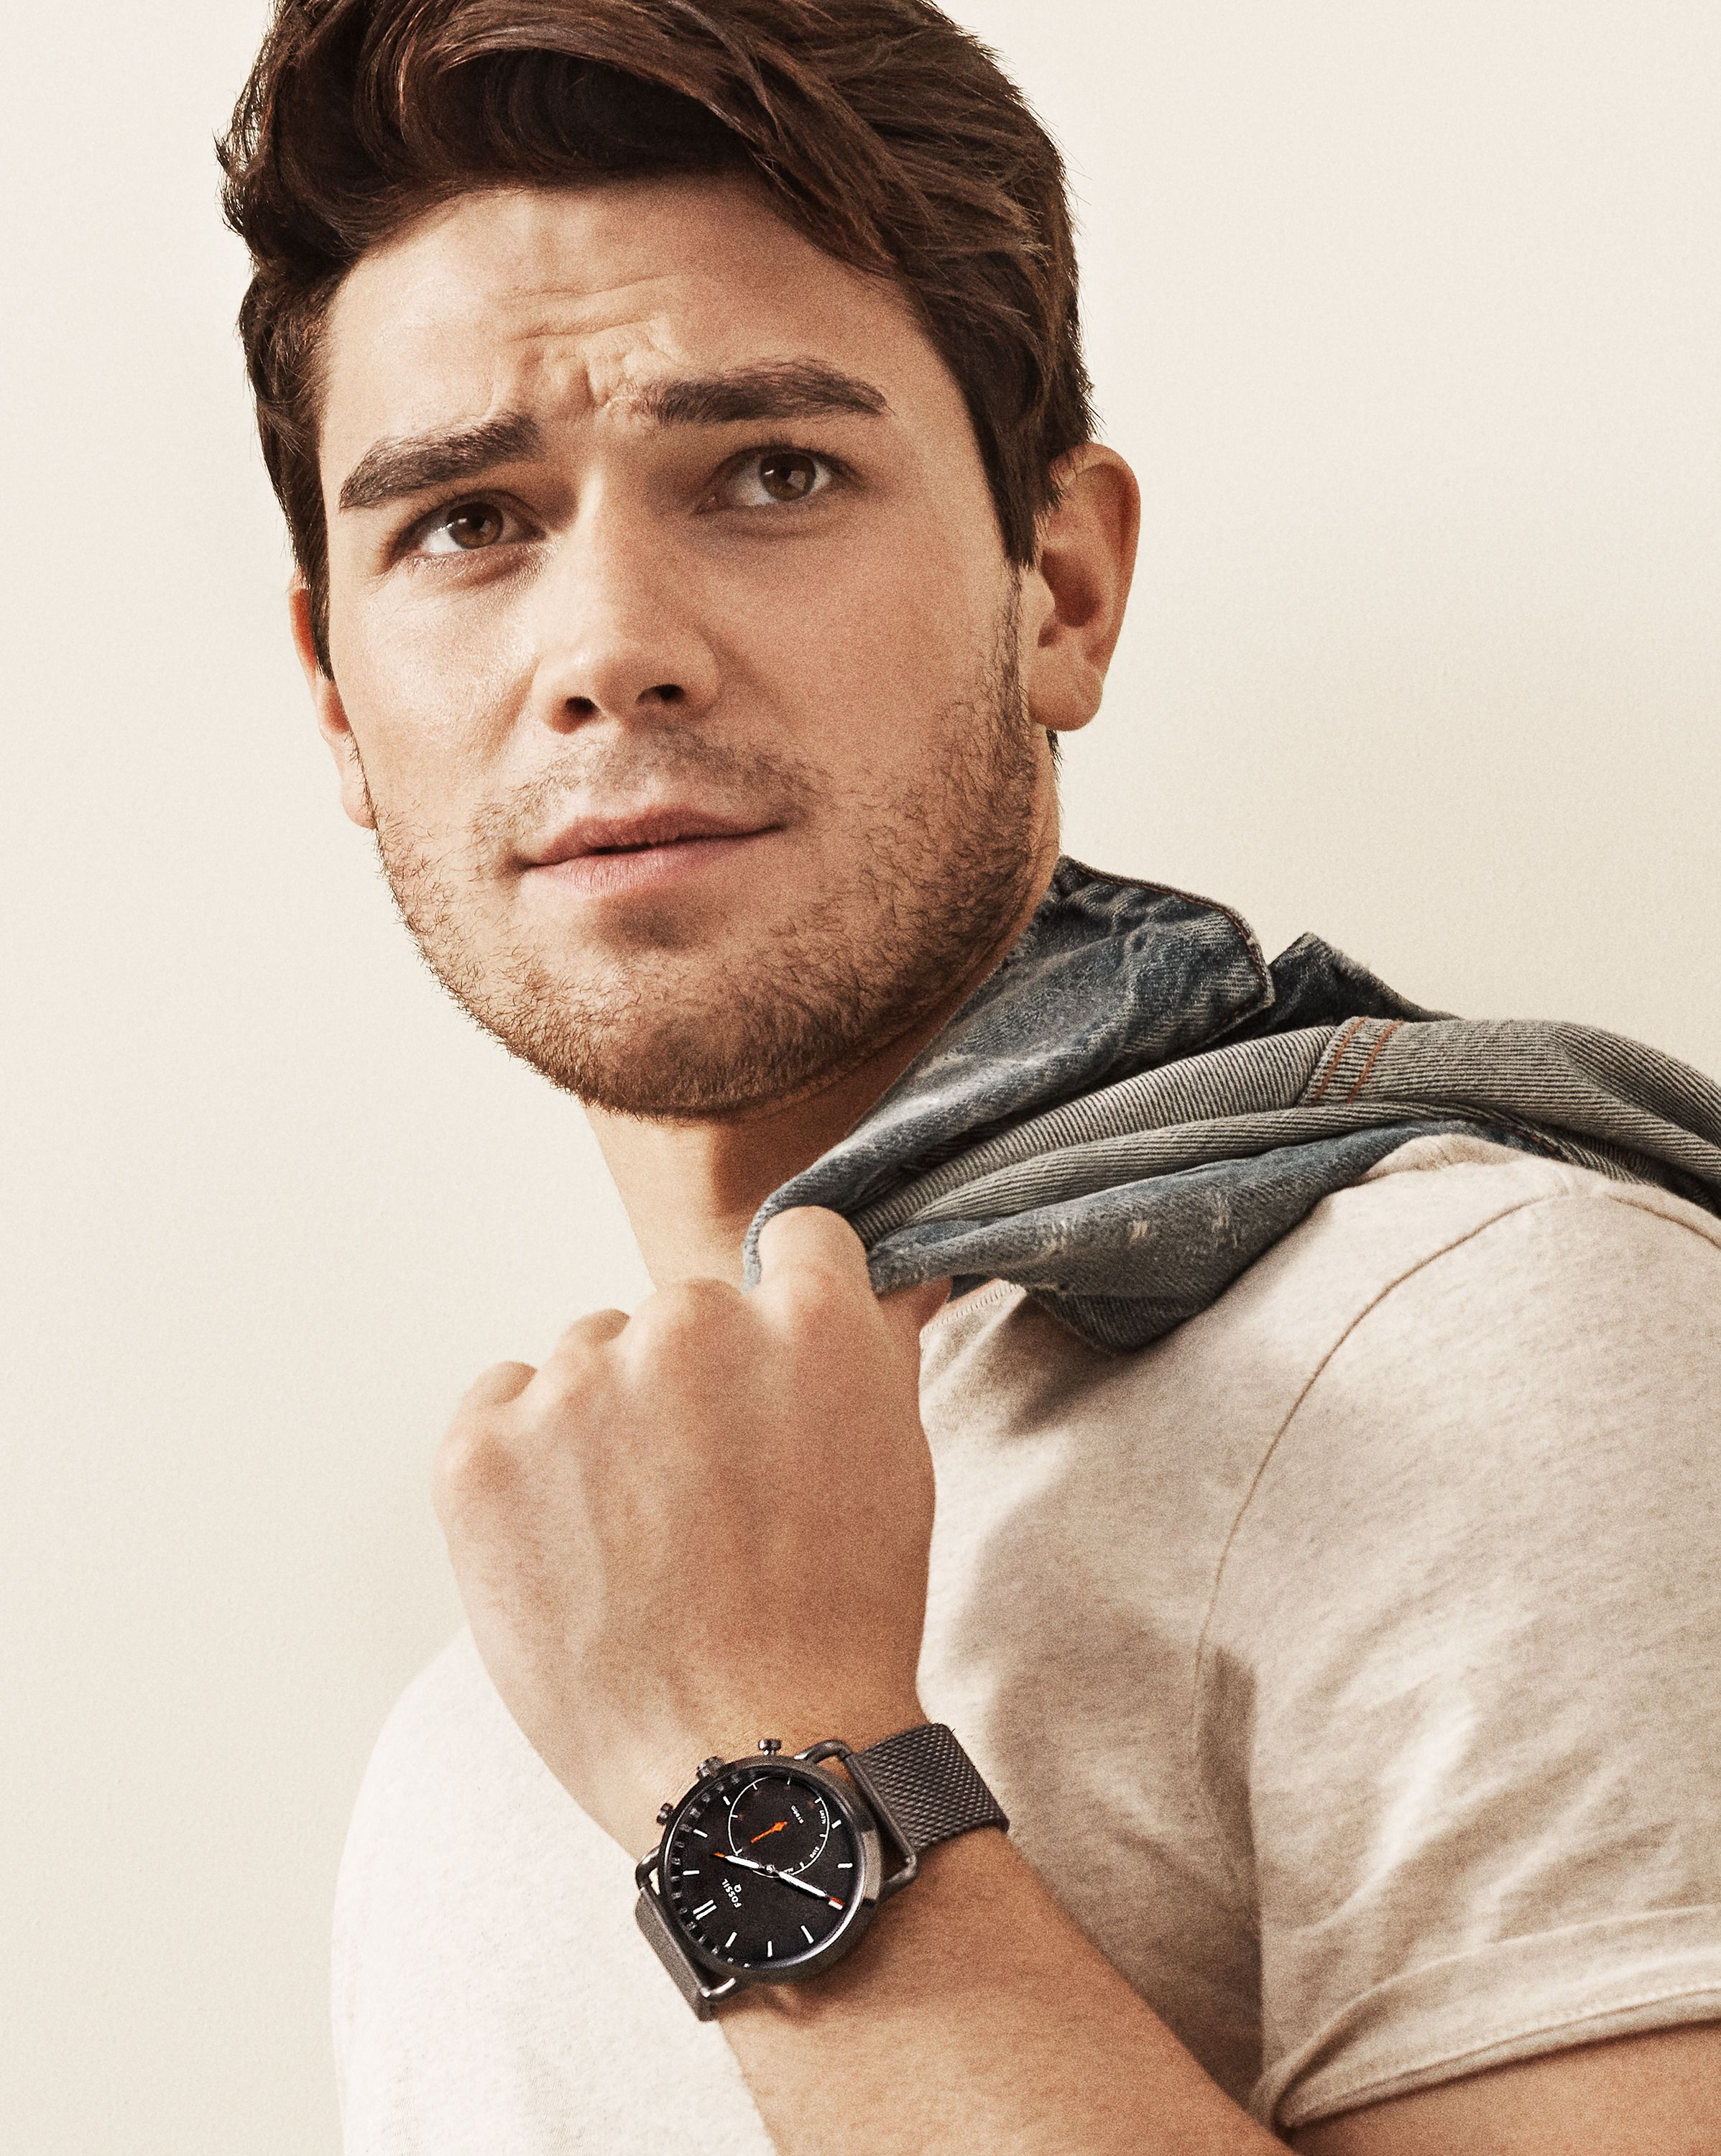 KJ Apa discusses his new celebrity ambassador role, what he looks for in wristwear and more